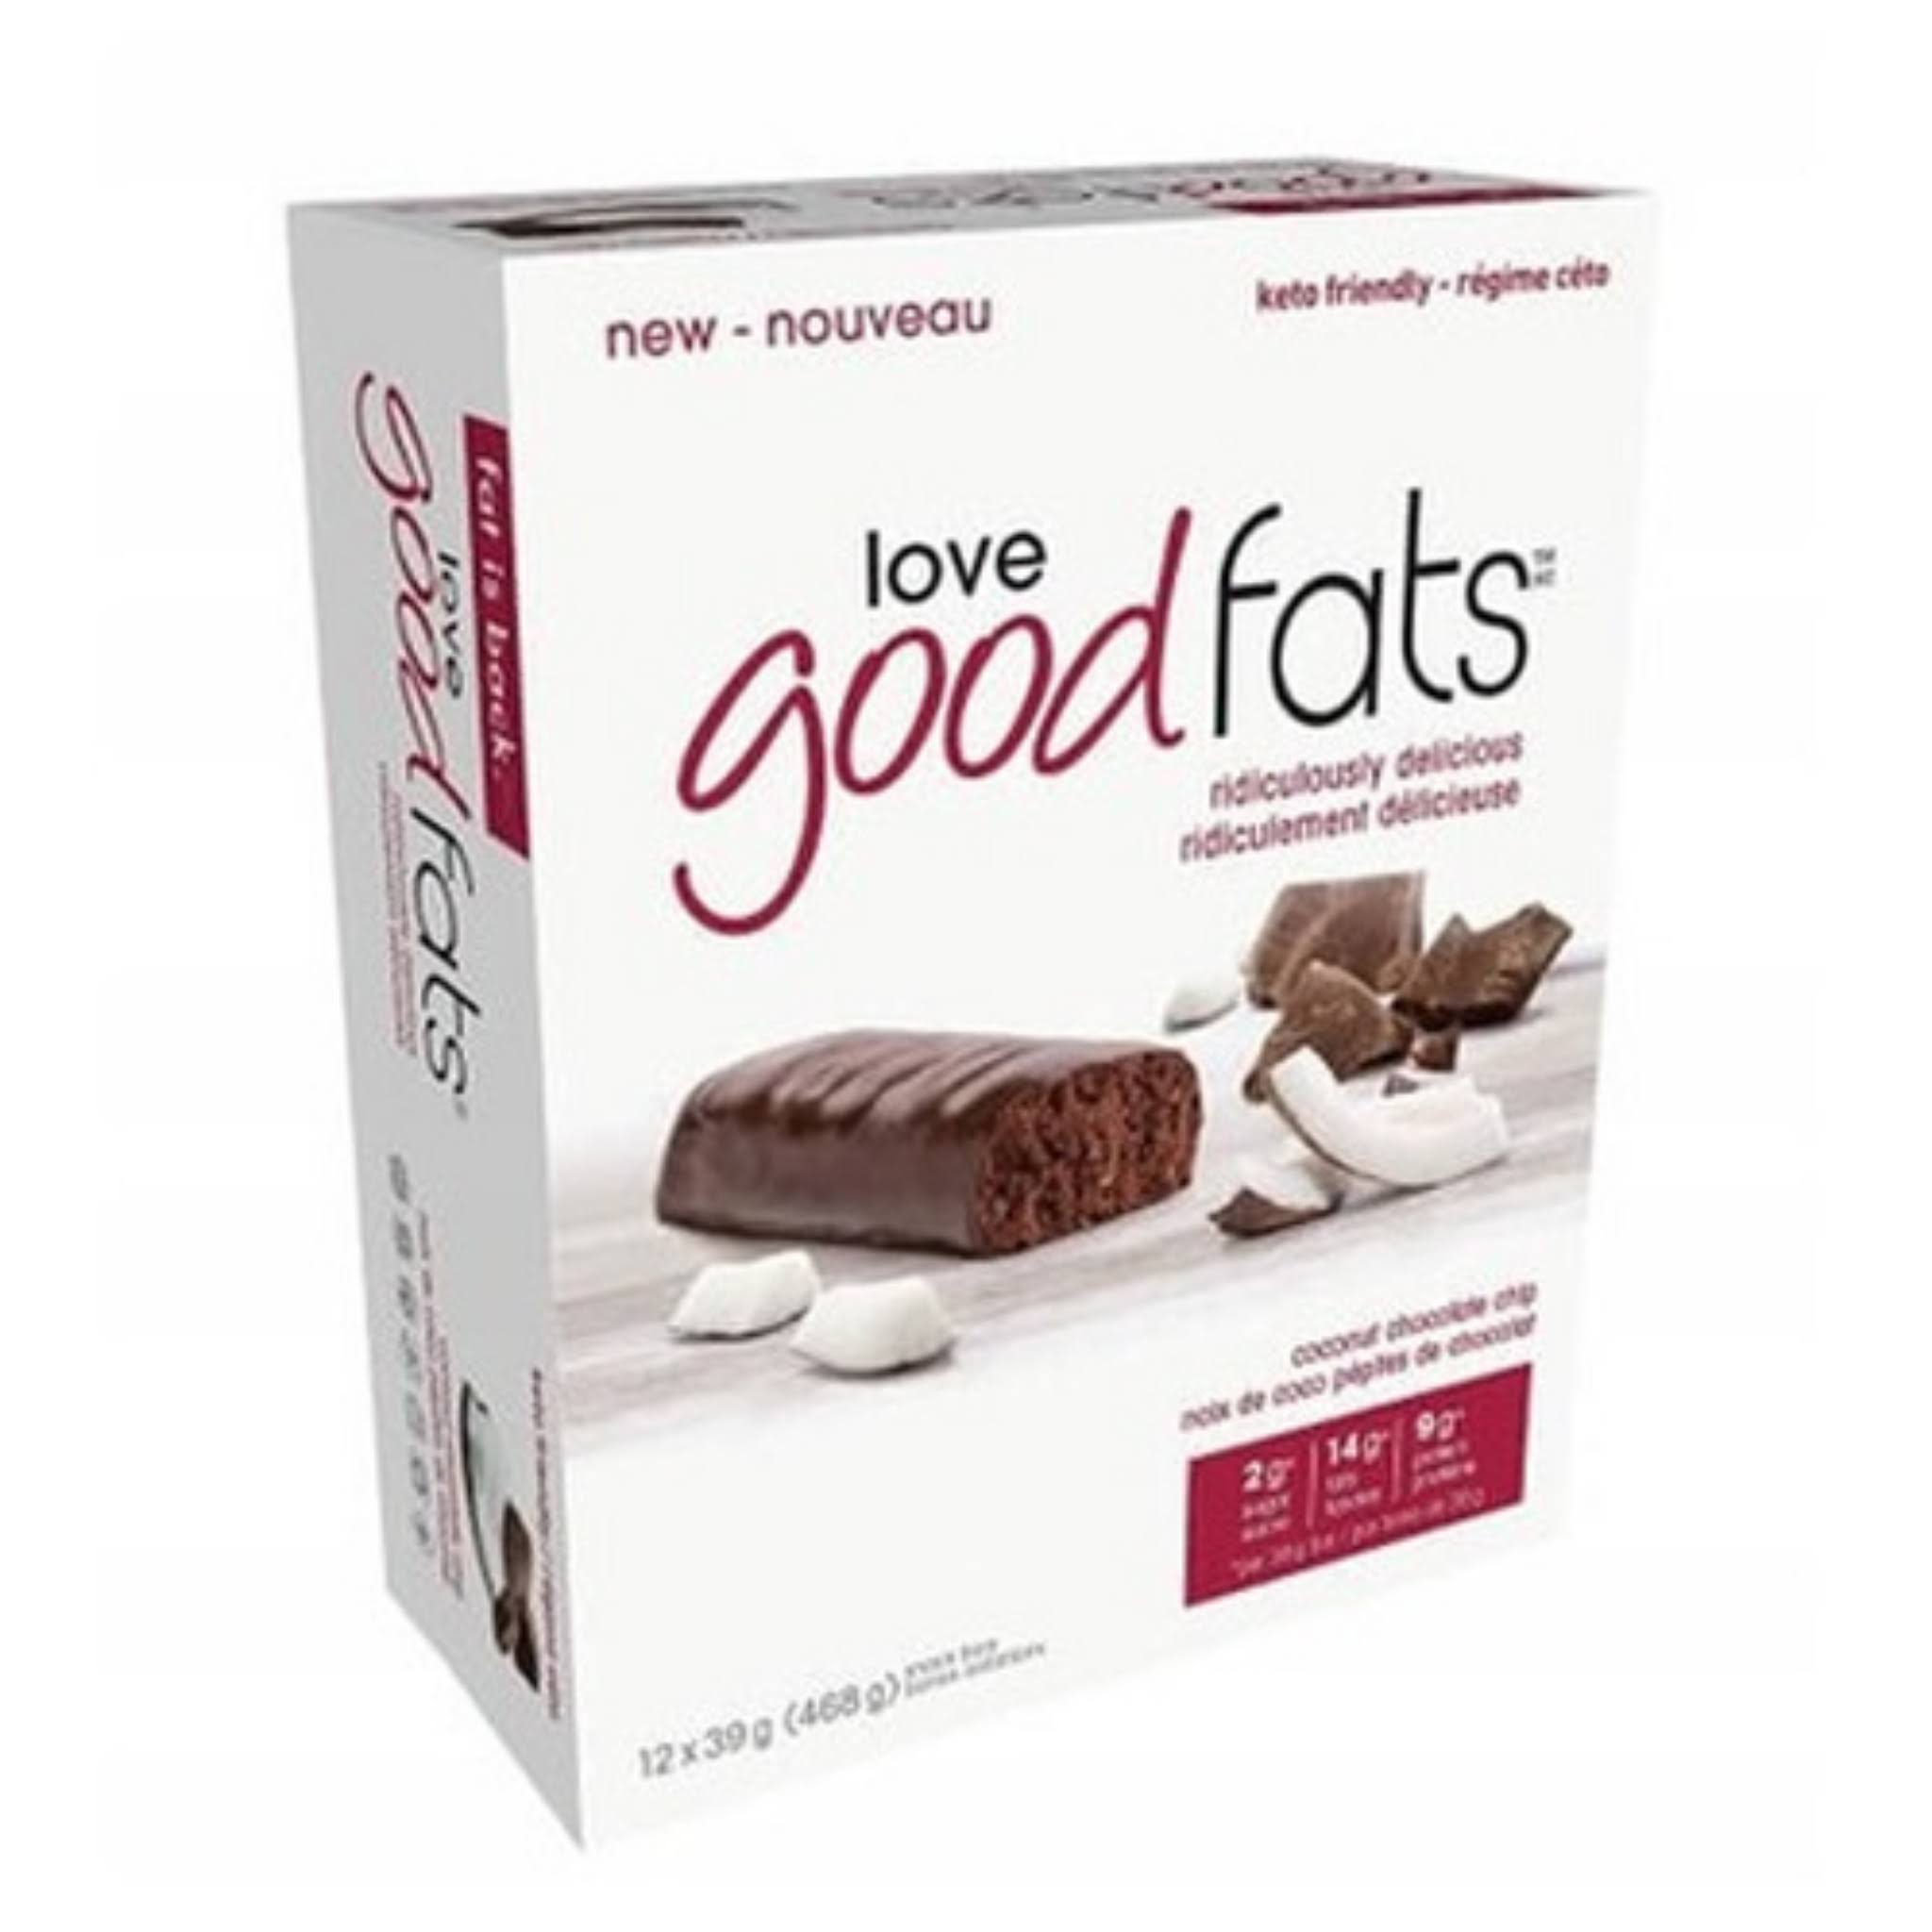 Love Good Fats Coconut Choc Chip Snack Bar 12x39g